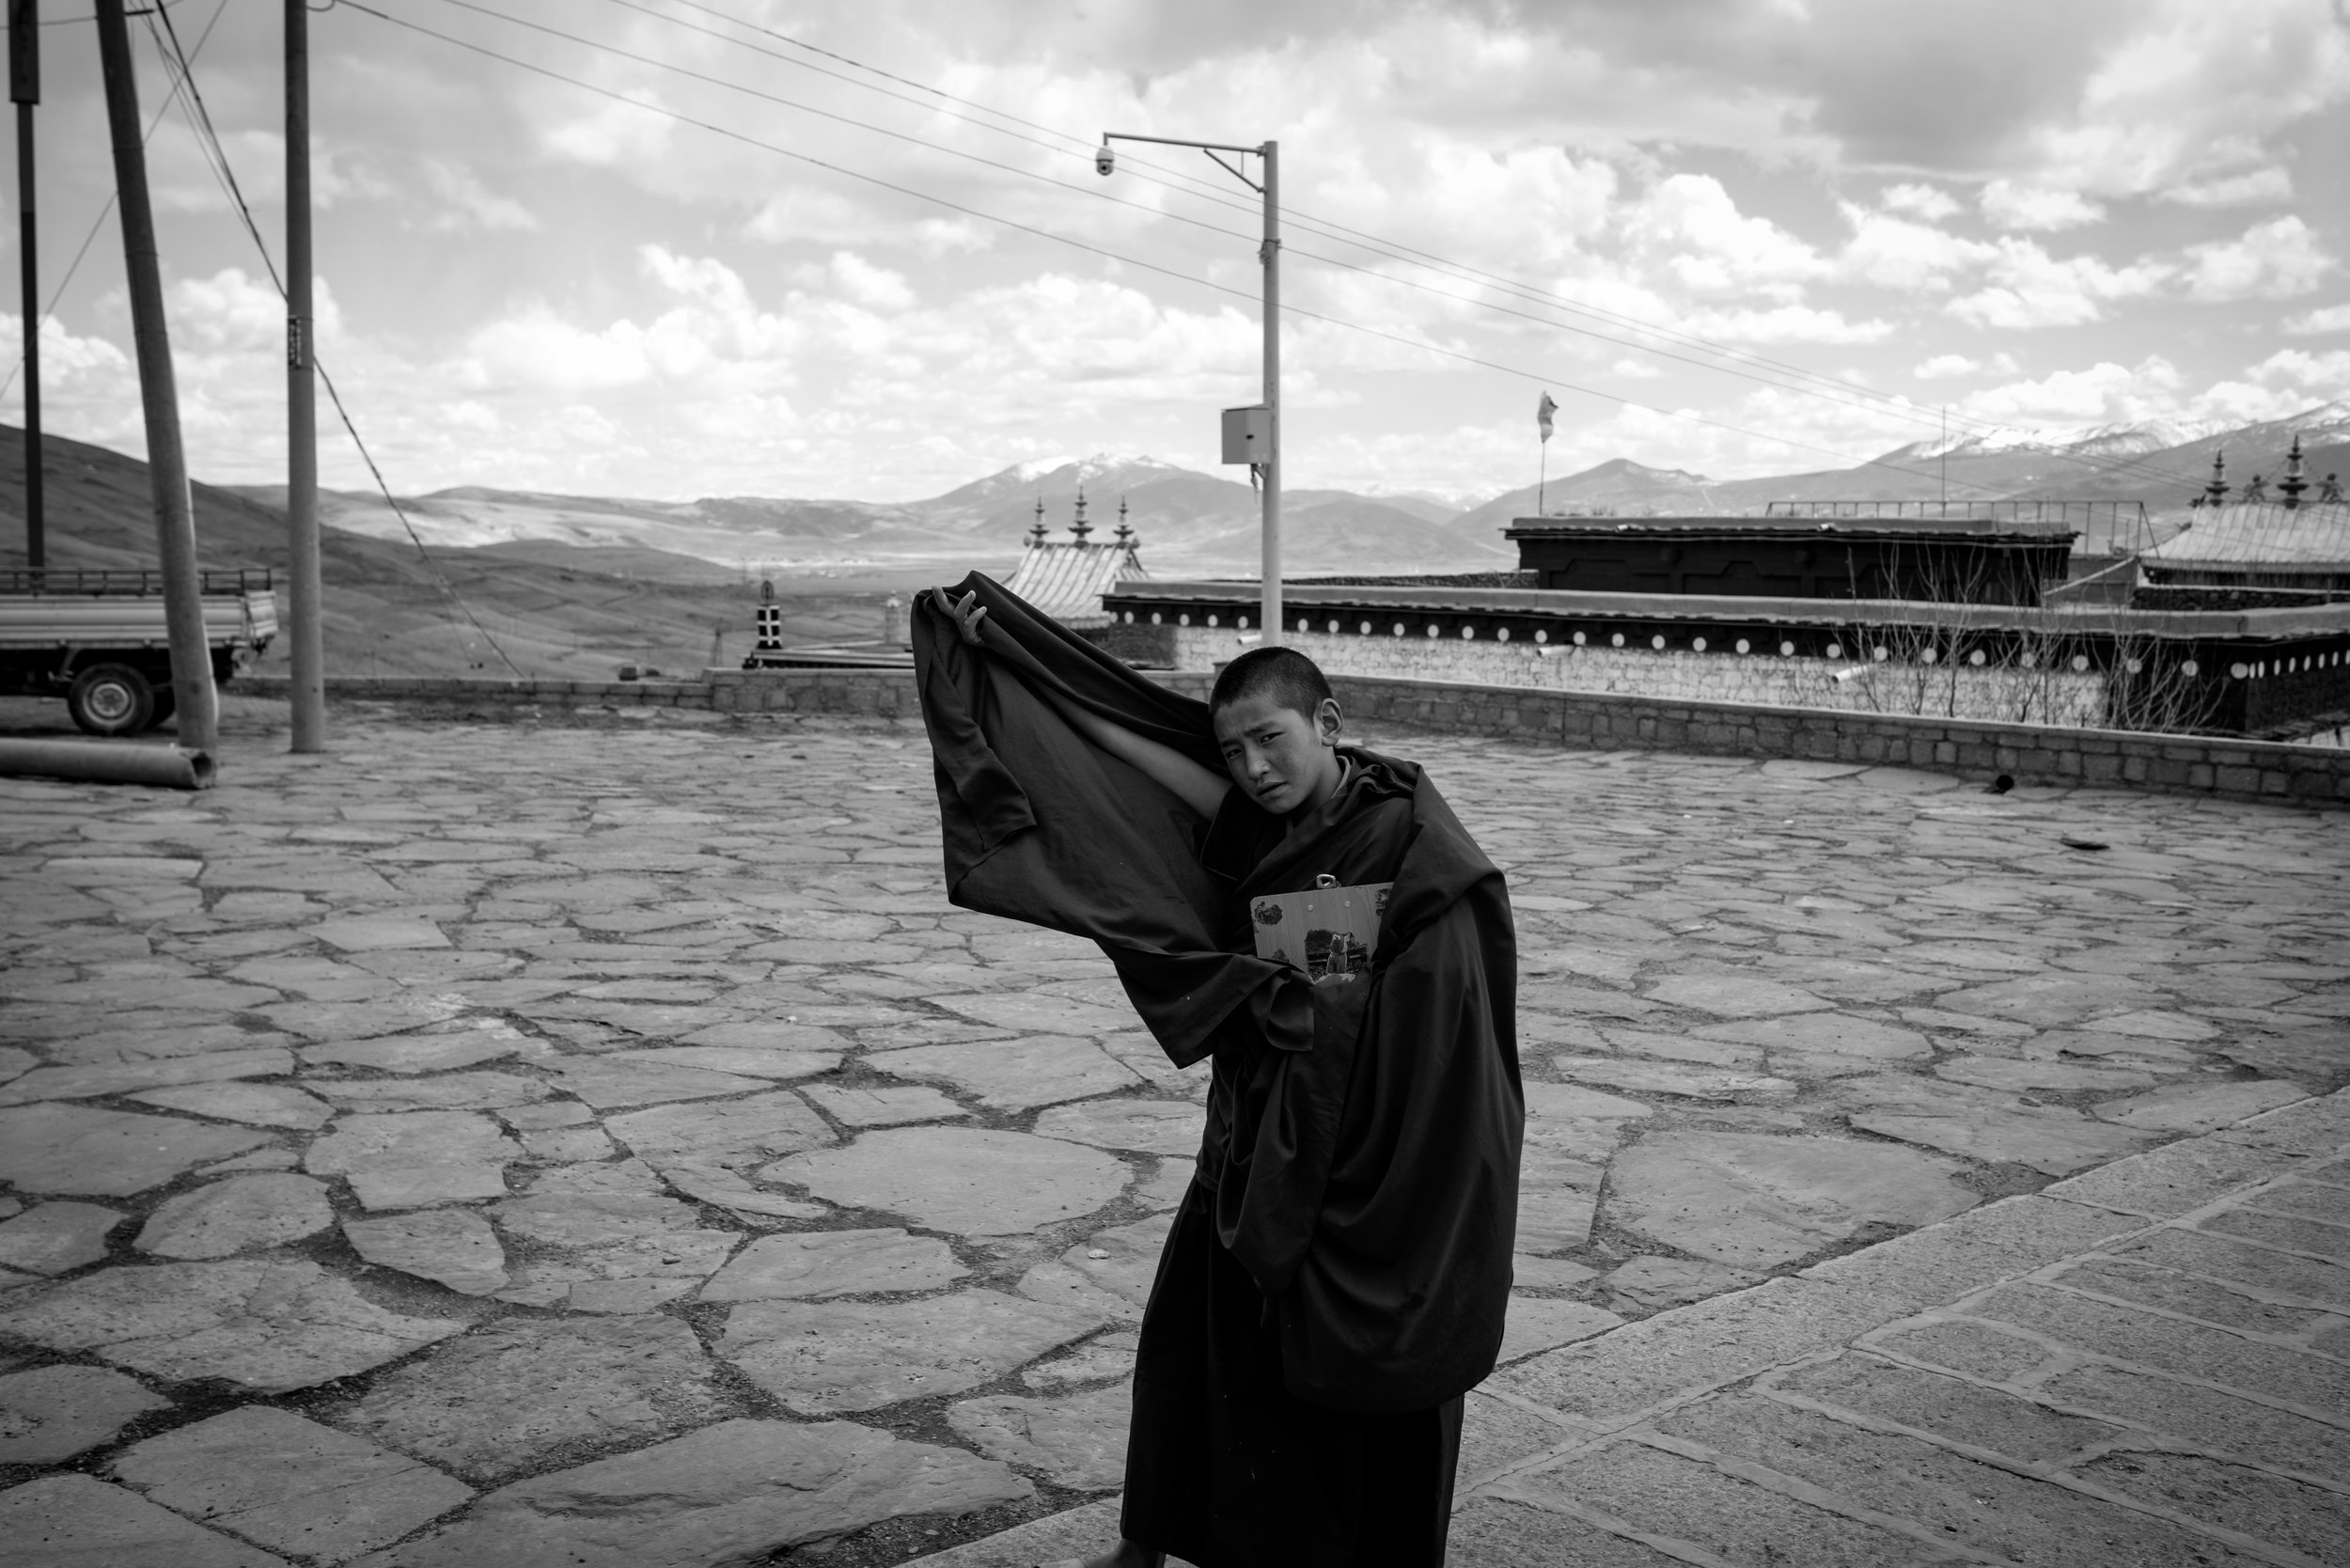 Monk walking to the monastery